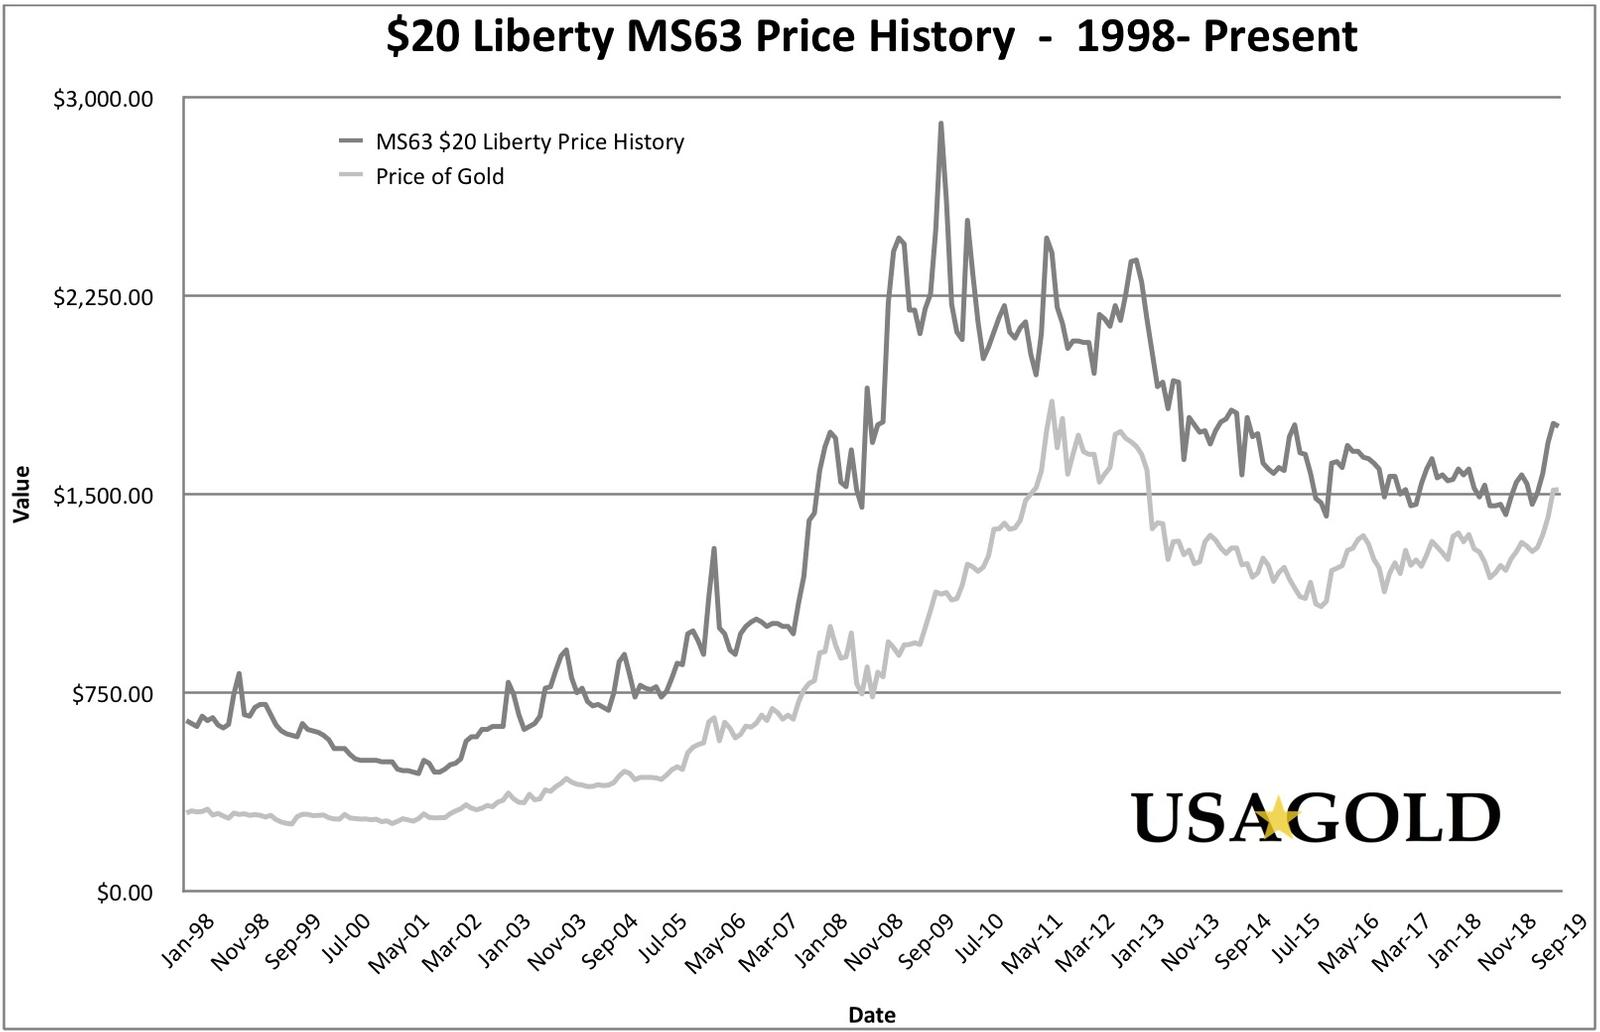 $20 Liberty MS63 Price History Graph (20 Year), shown with the price of spot gold for the same period.